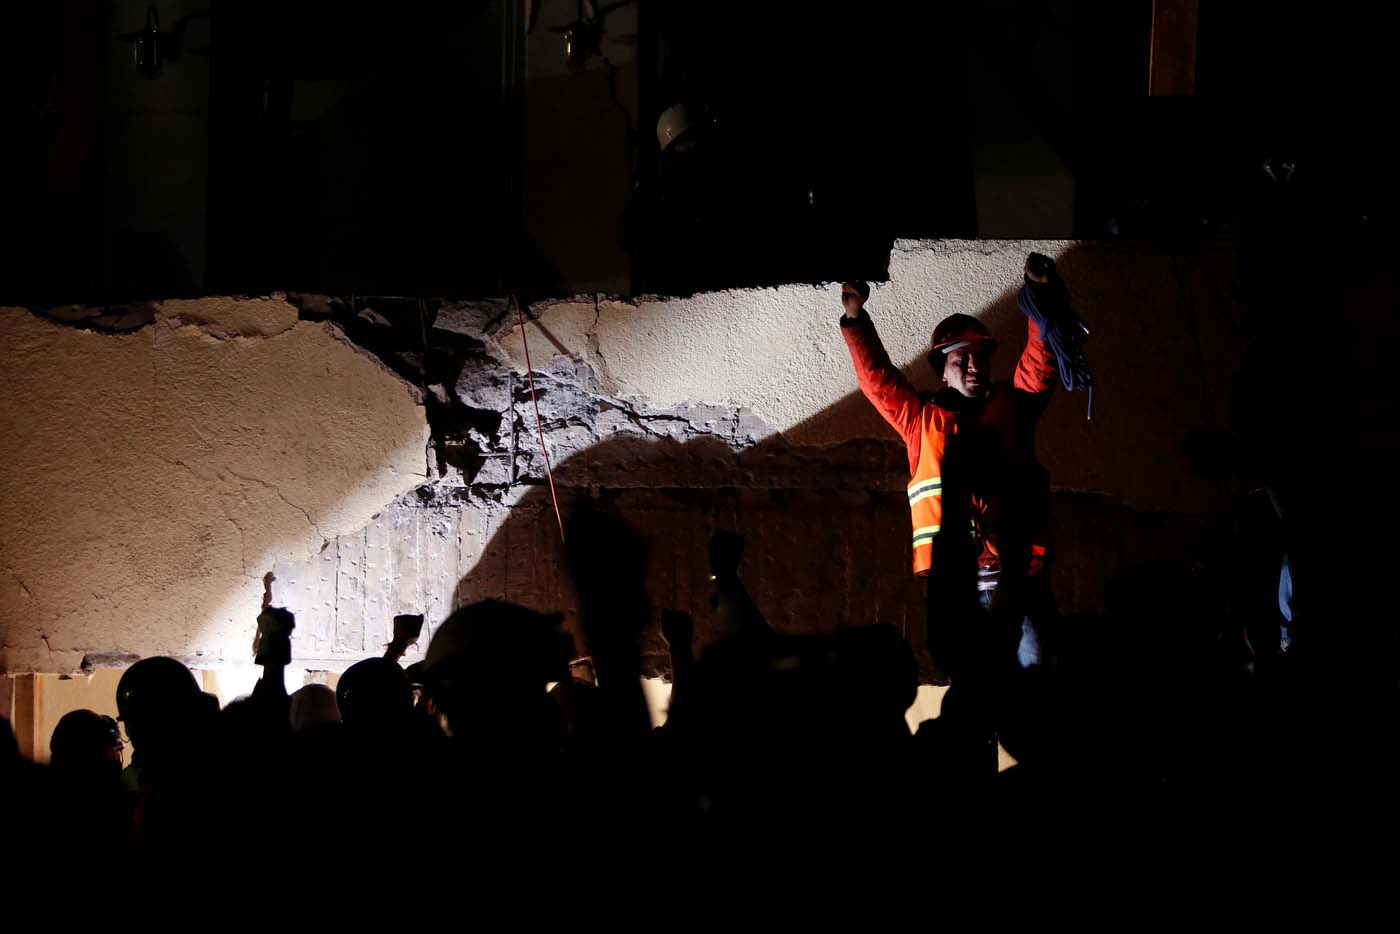 Rescue workers make a silent gesture as they search through rubble during a floodlit search for students at Enrique Rebsamen school in Mexico City, Mexico September 19, 2017. Picture taken September 19, 2017. REUTERS/Carlos Jasso